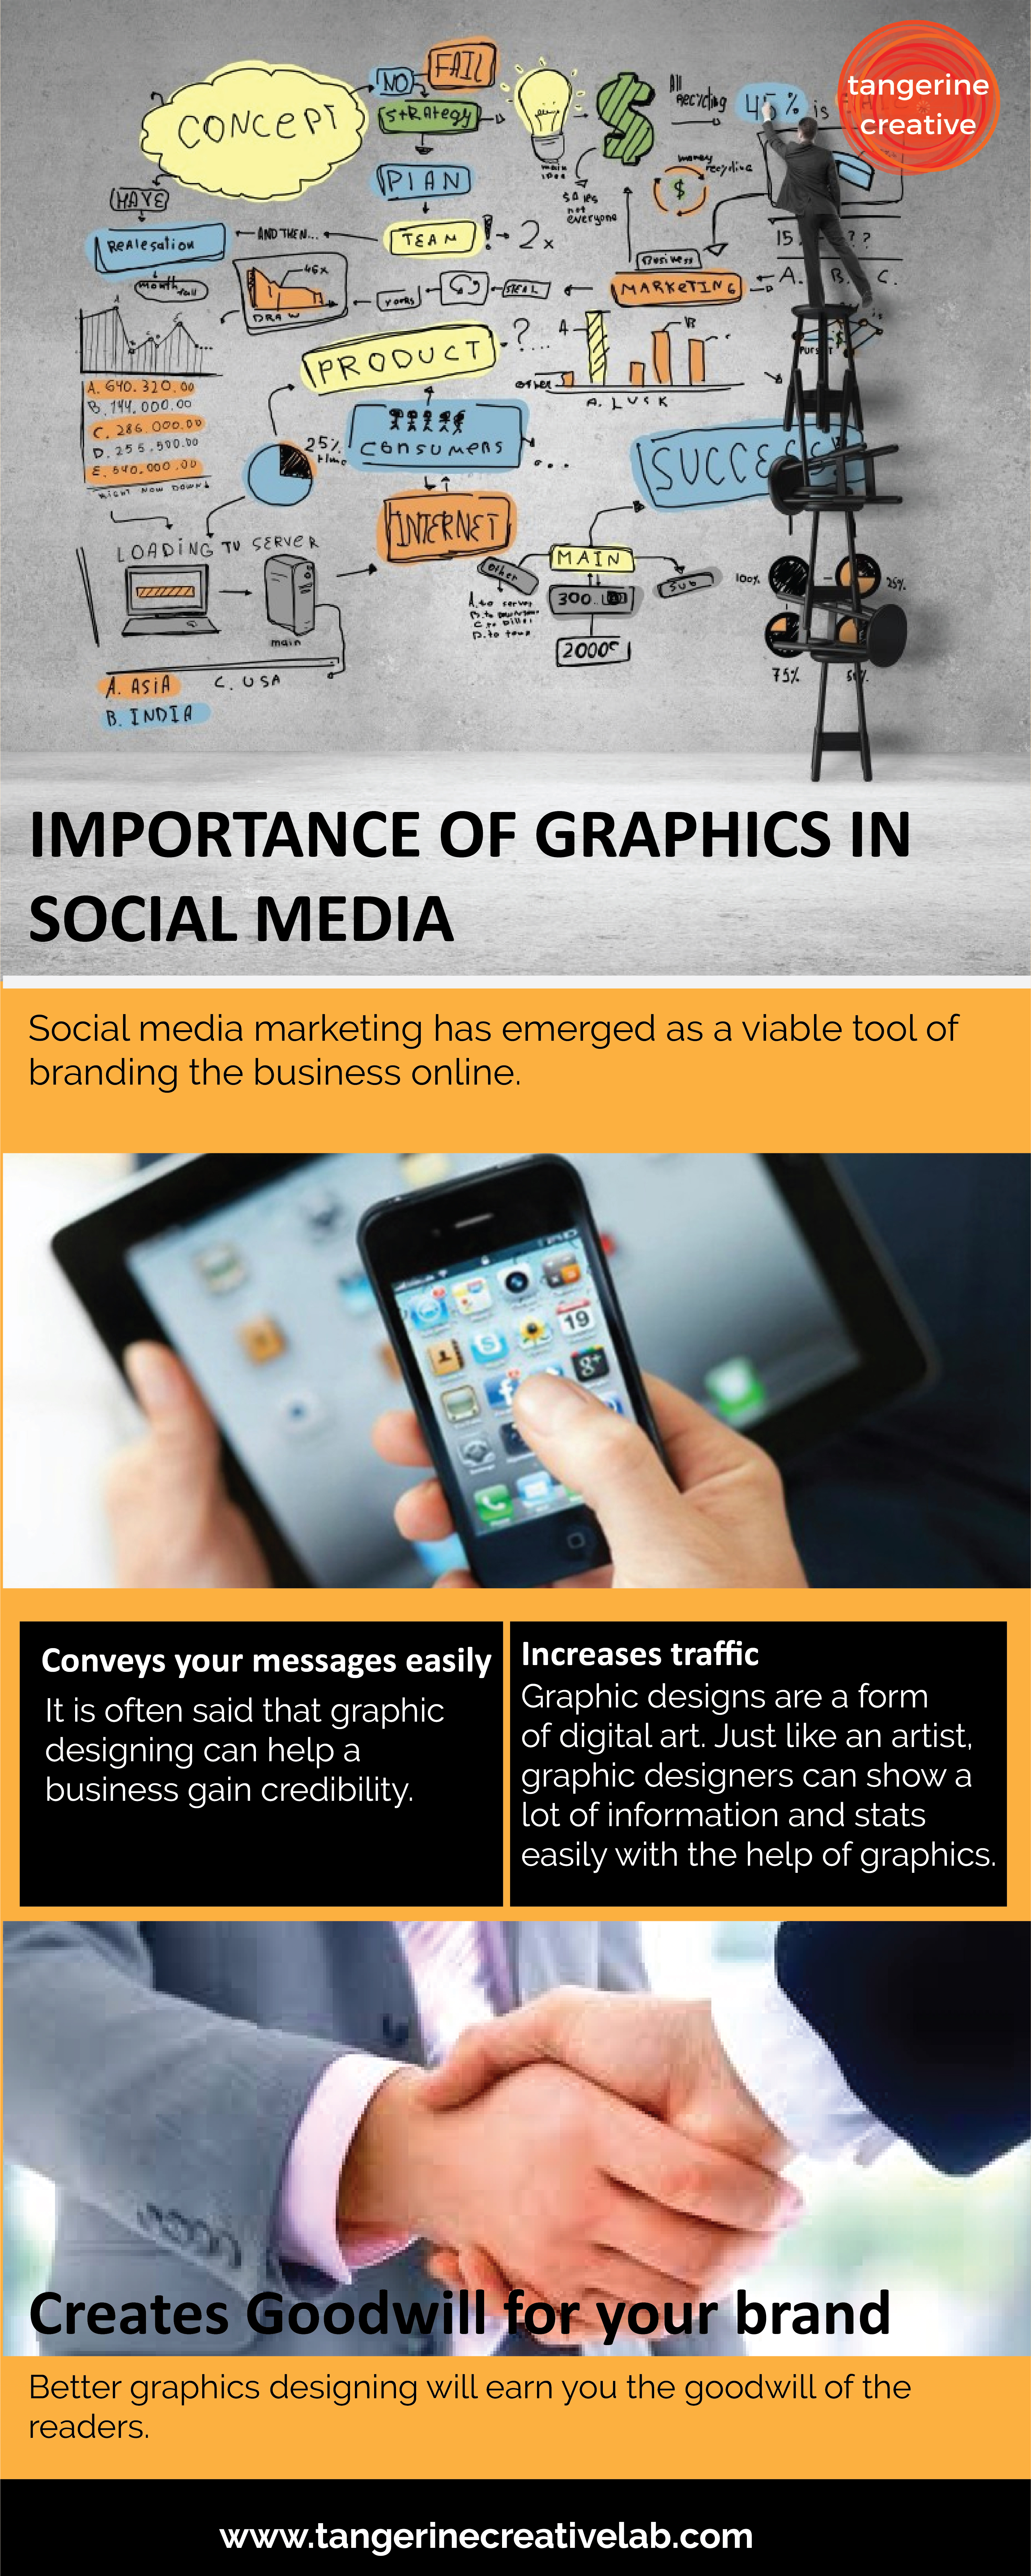 importance of graphics in social media